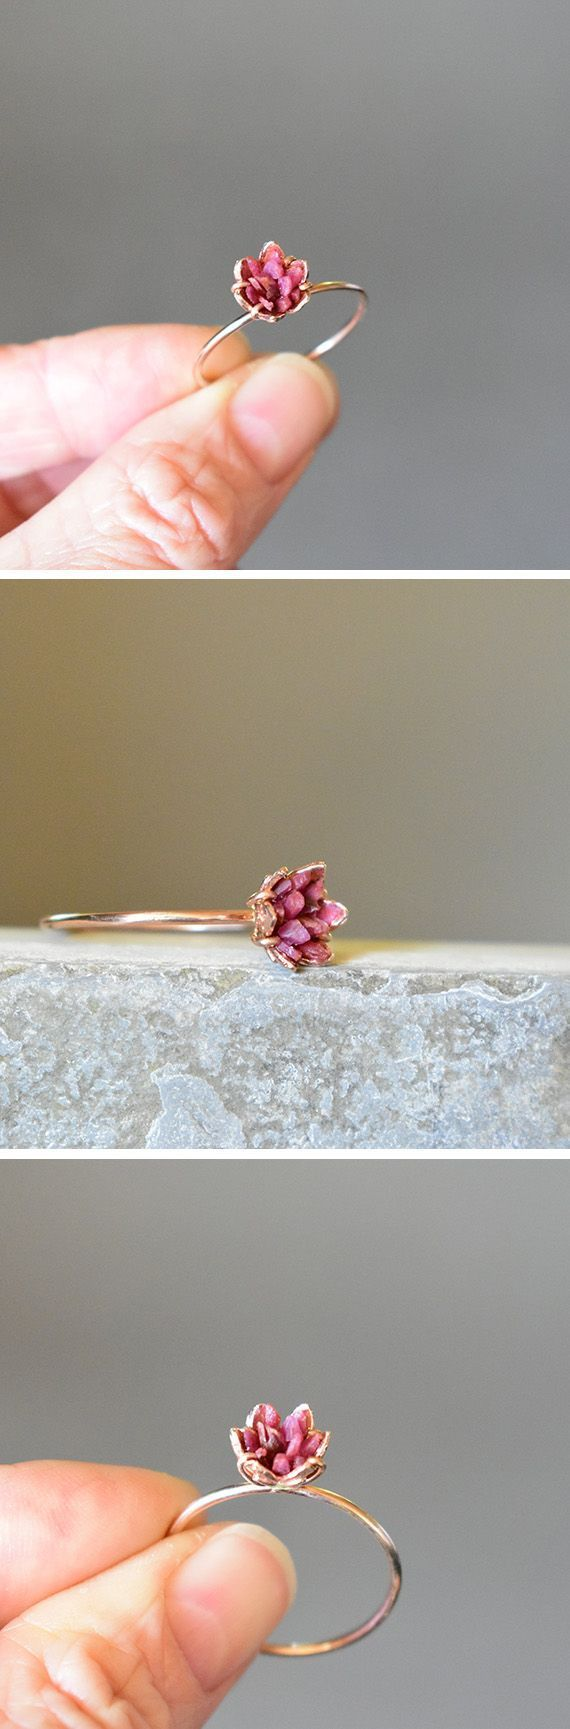 Rough Ruby Ring, Rose Gold and Ruby Ring, 40th Wedding Anniversary Theme Gifts, Ruby Birthstone Jewelry, July Gemstone Lotus Flower Ring